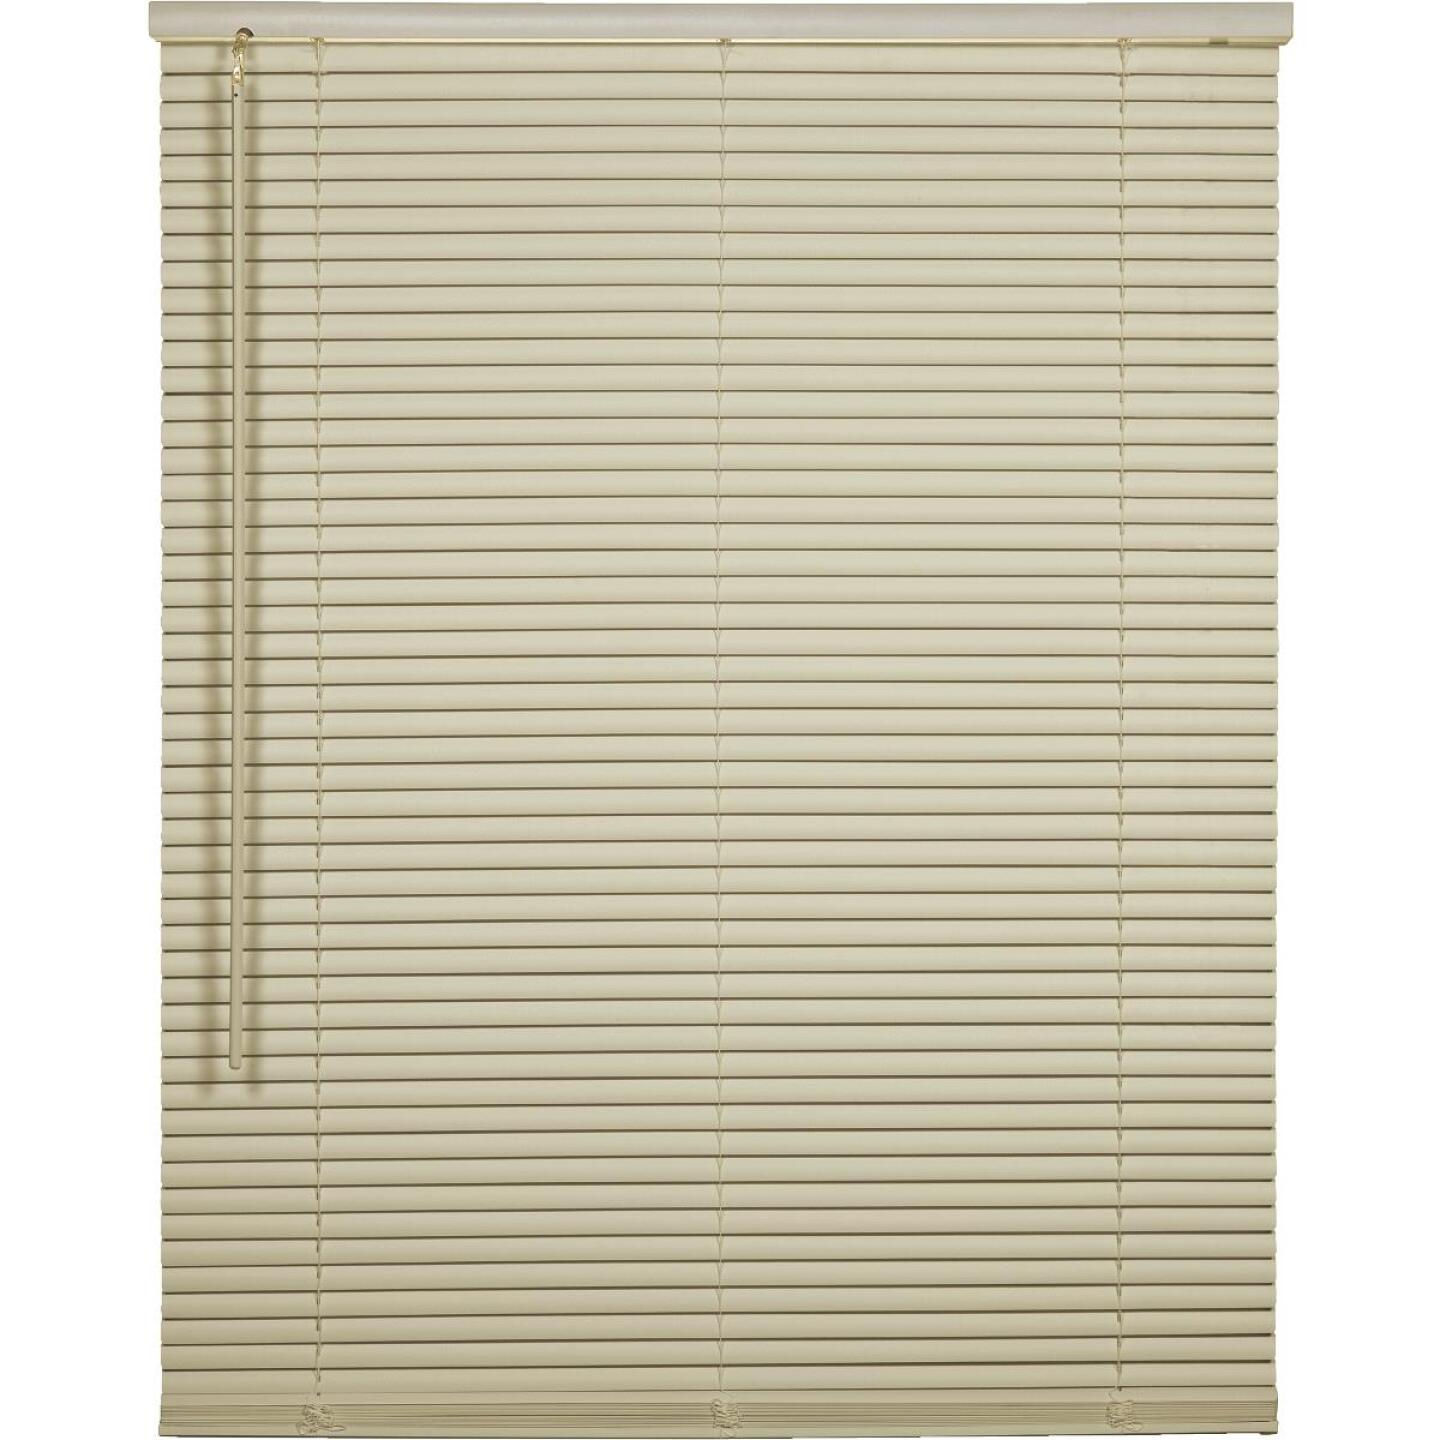 Home Impressions 29 In. x 64 In. x 1 In. Vanilla Vinyl Light Filtering Cordless Mini Blind Image 1